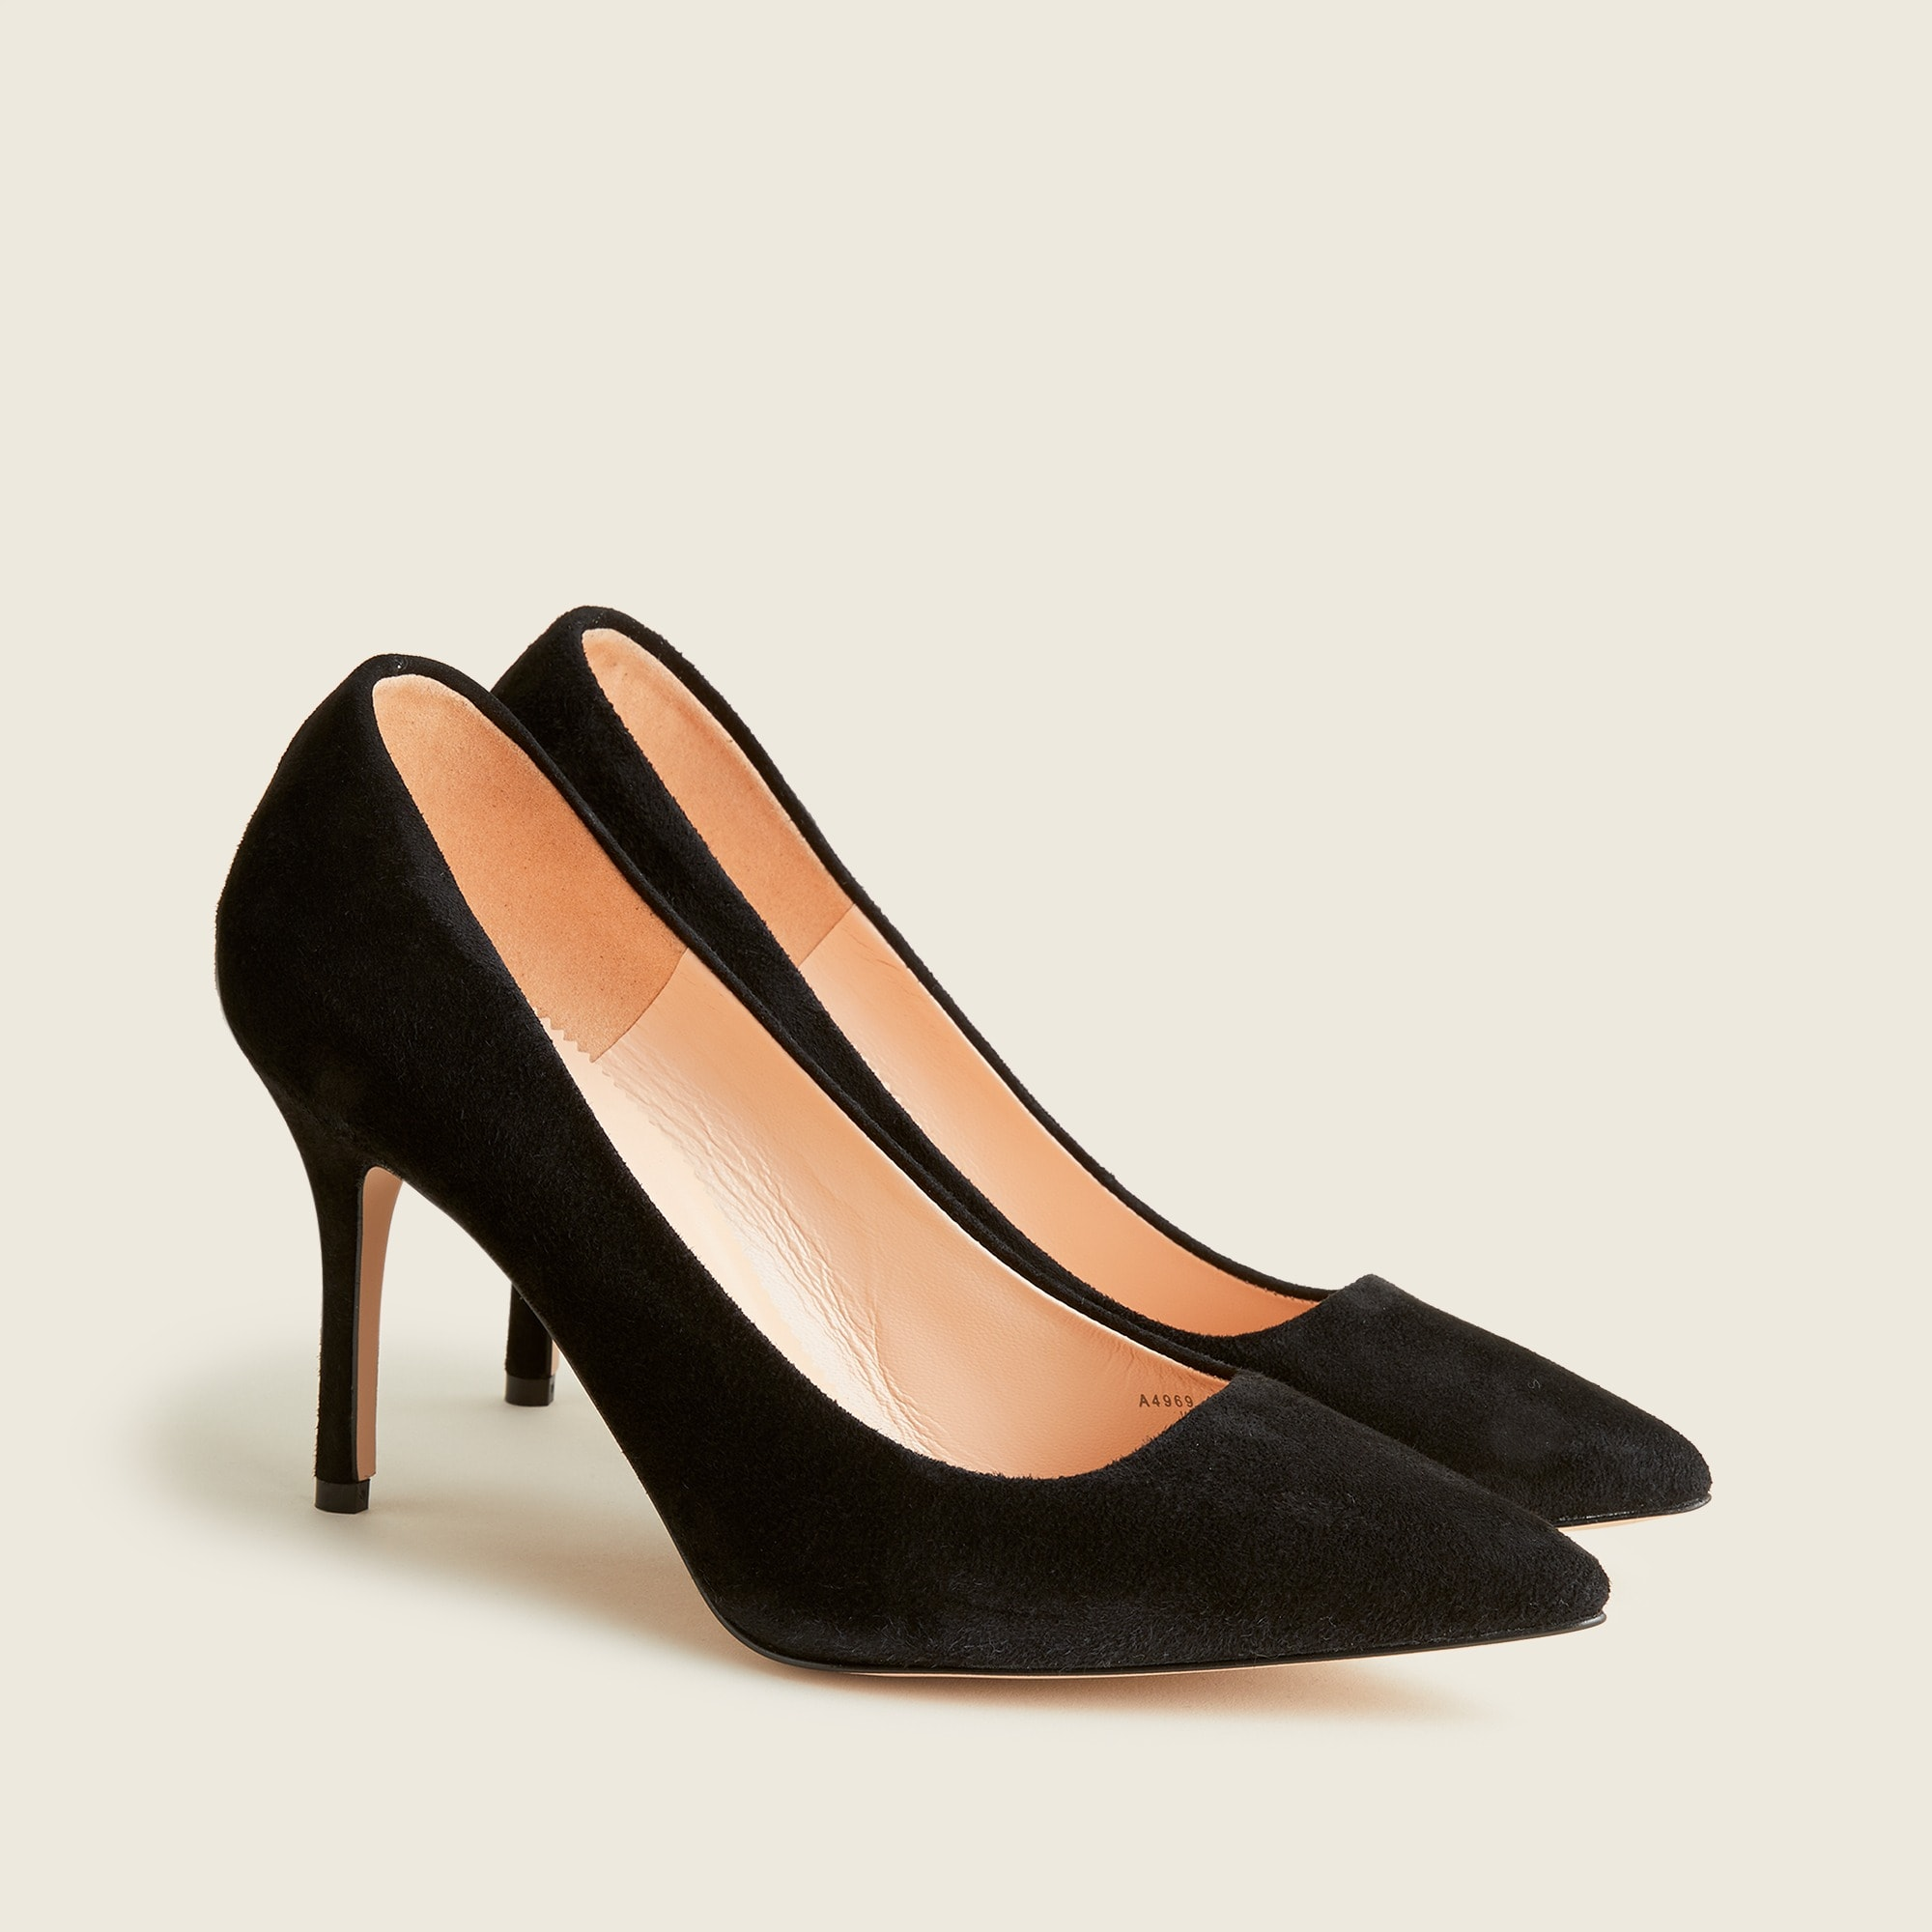 Image 1 for Elsie suede pumps